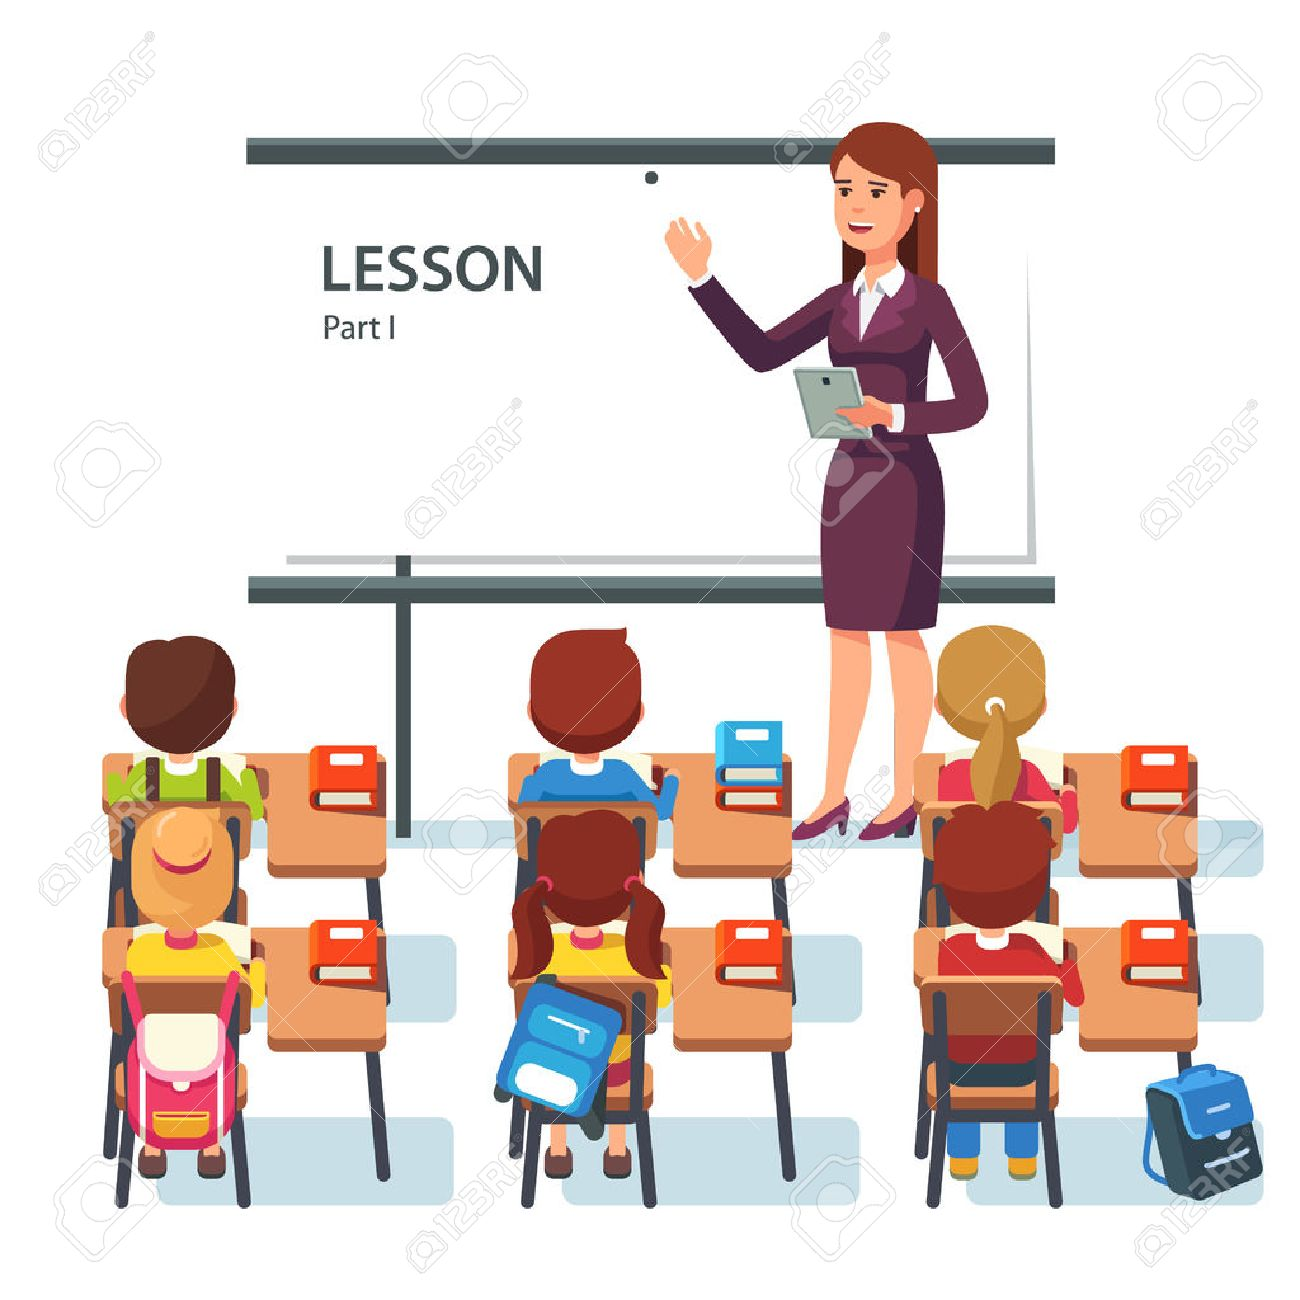 Modern school lesson. Little students and teacher. Classroom with whiteboard, pupils tables and chairs. Modern flat style vector illustration isolated on white background. - 55251108